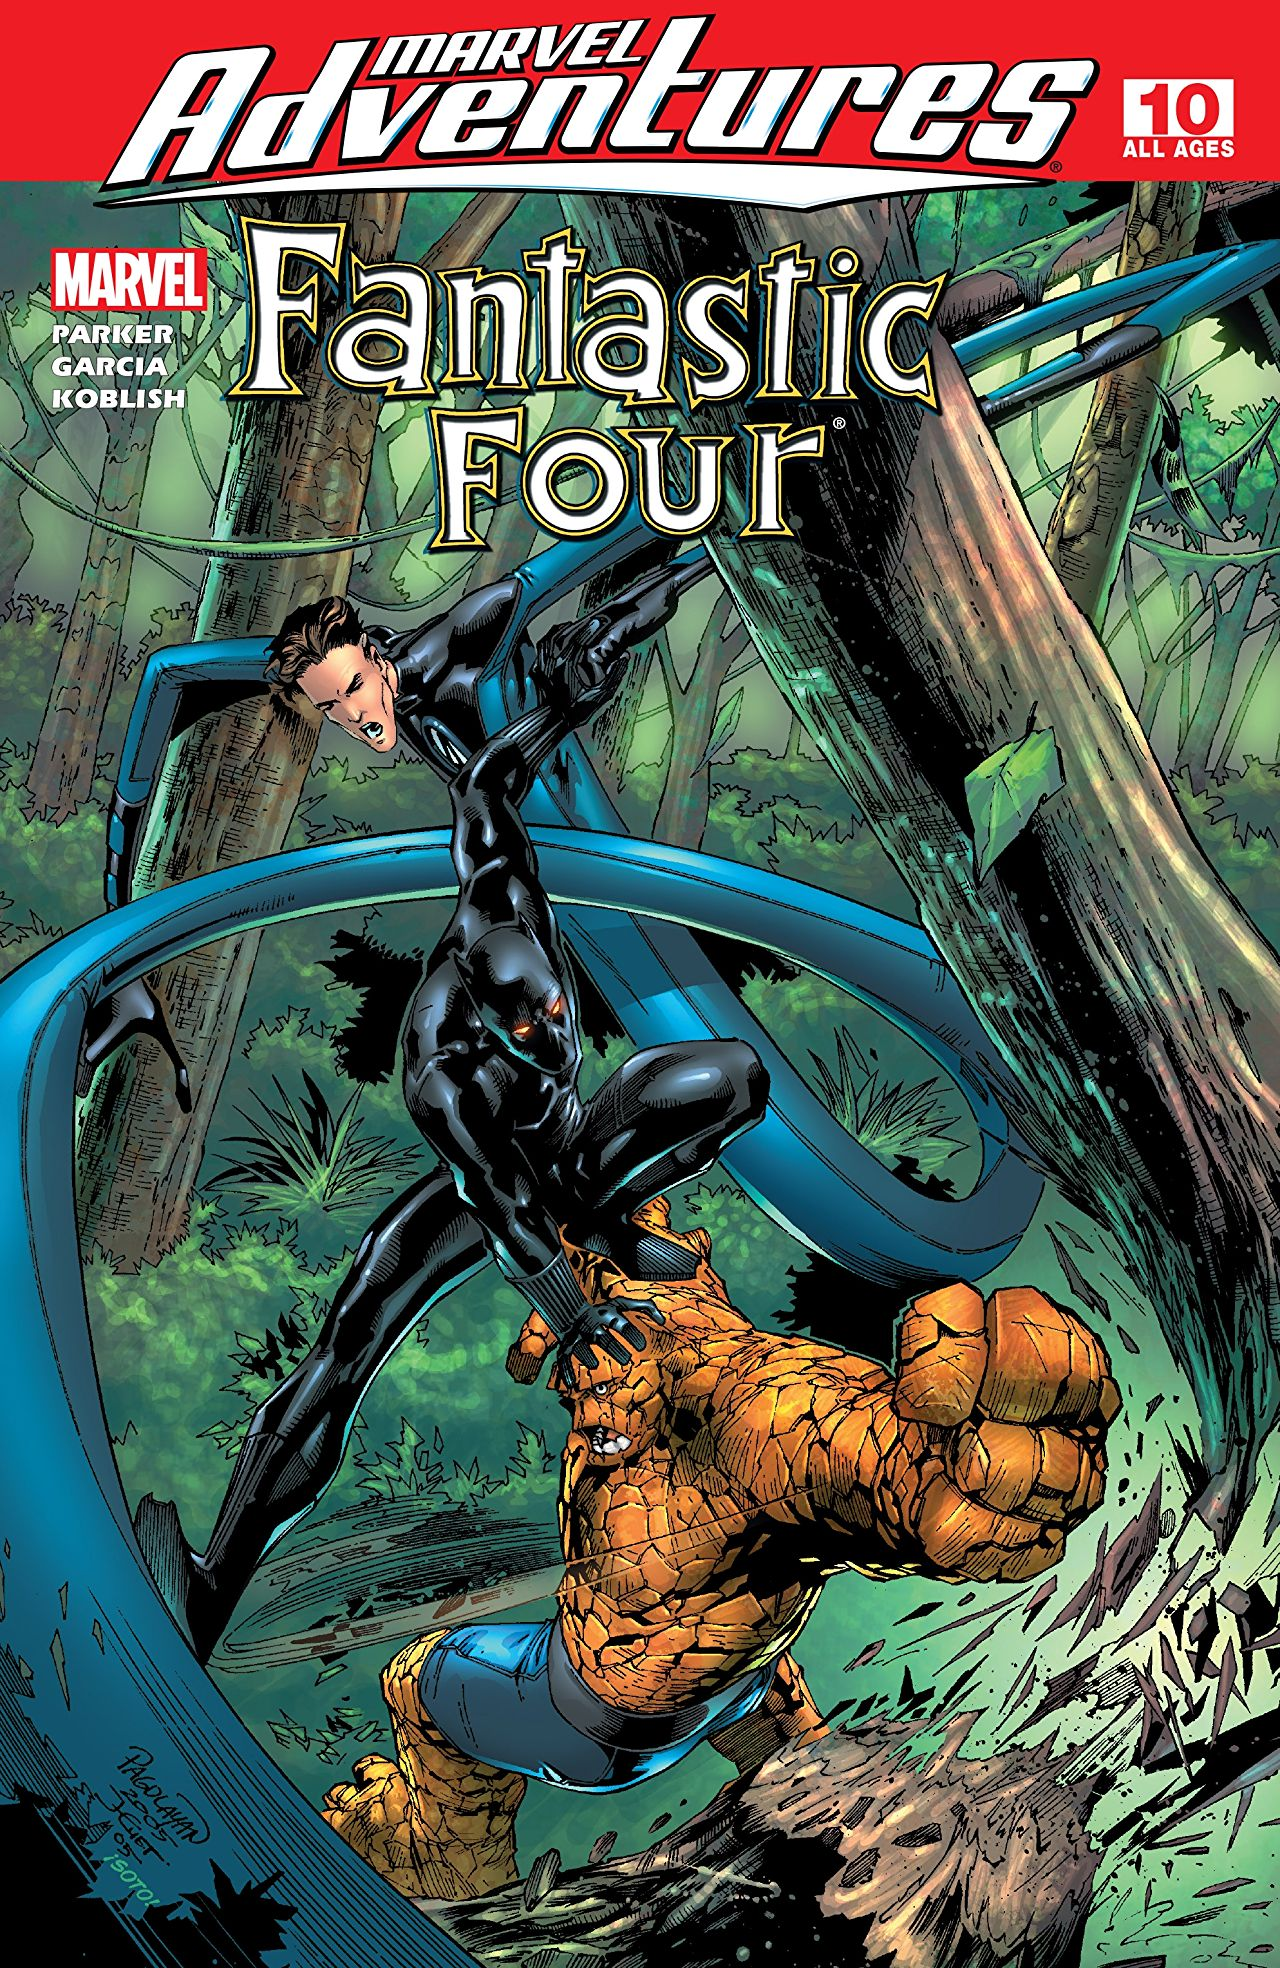 Marvel-Verse: Black Panther TPB Review